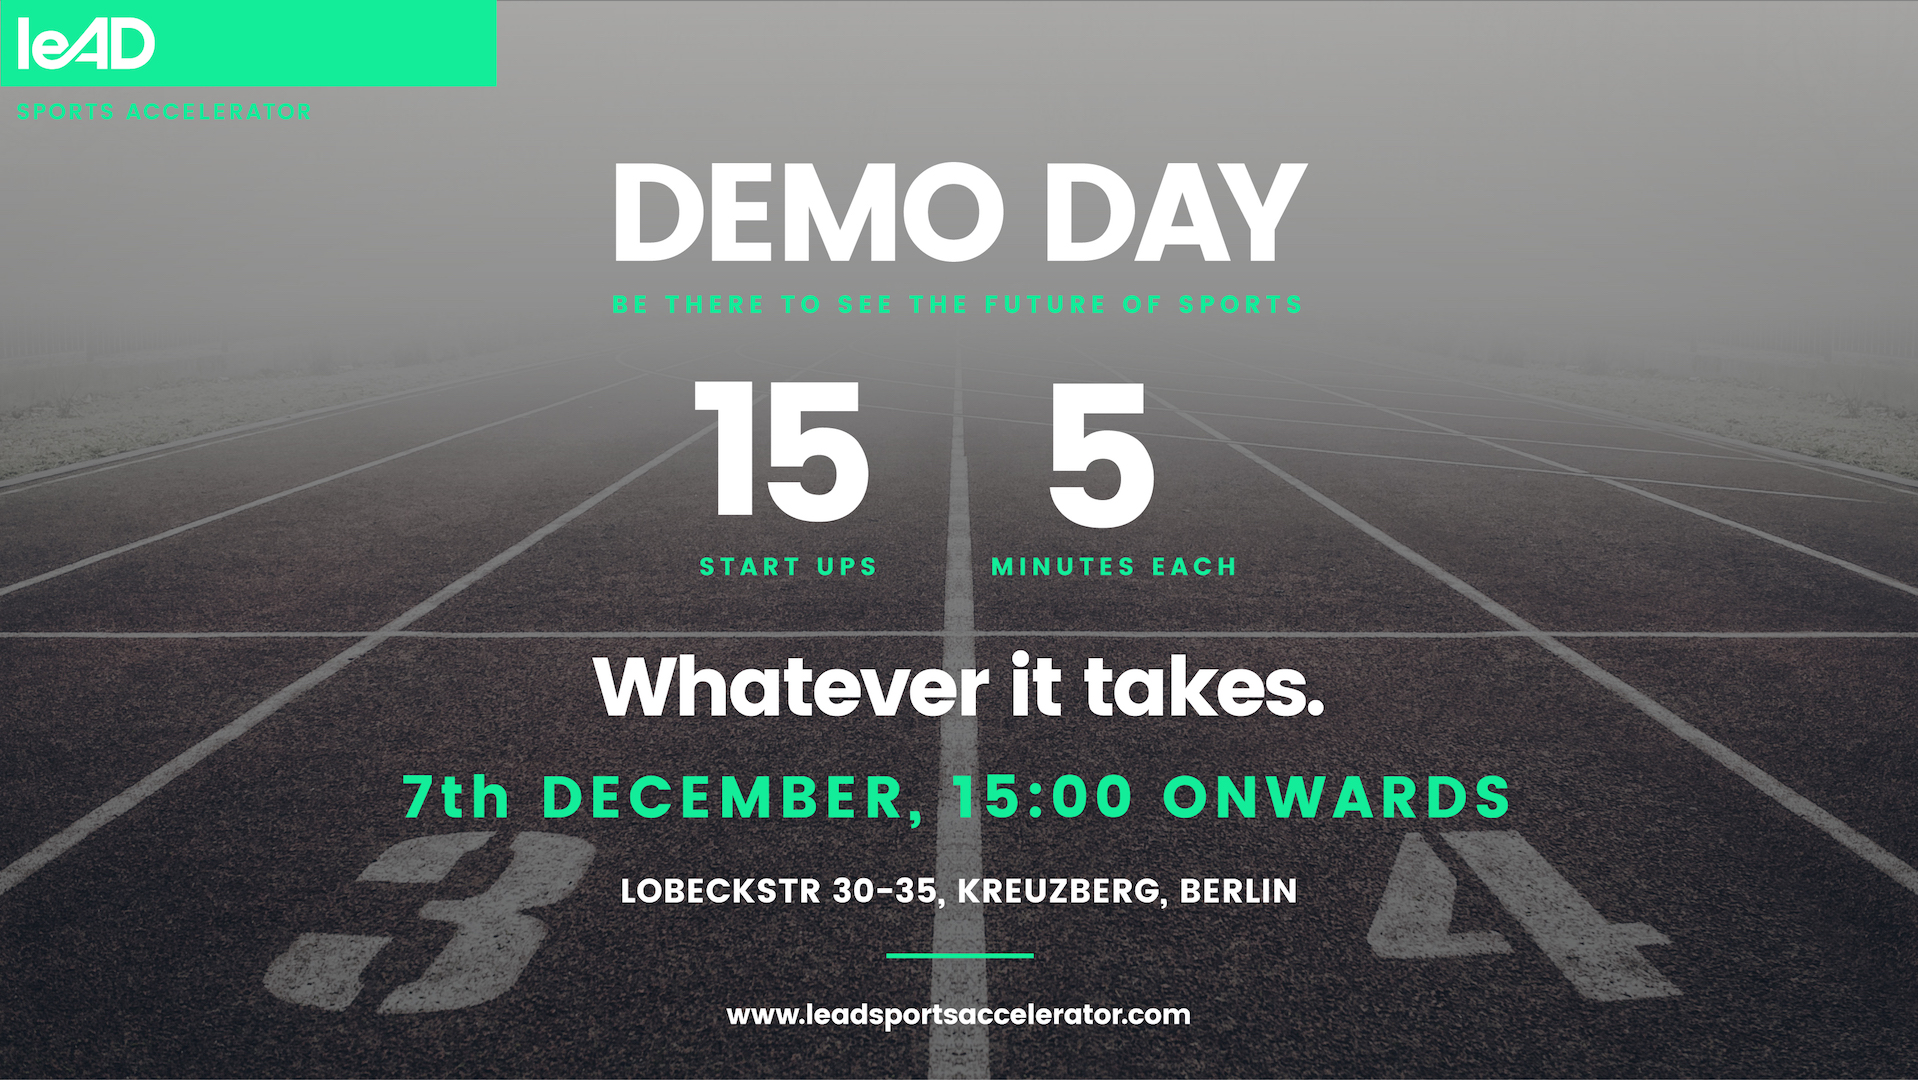 Demo Day - 7th December, 2017 - Higlights